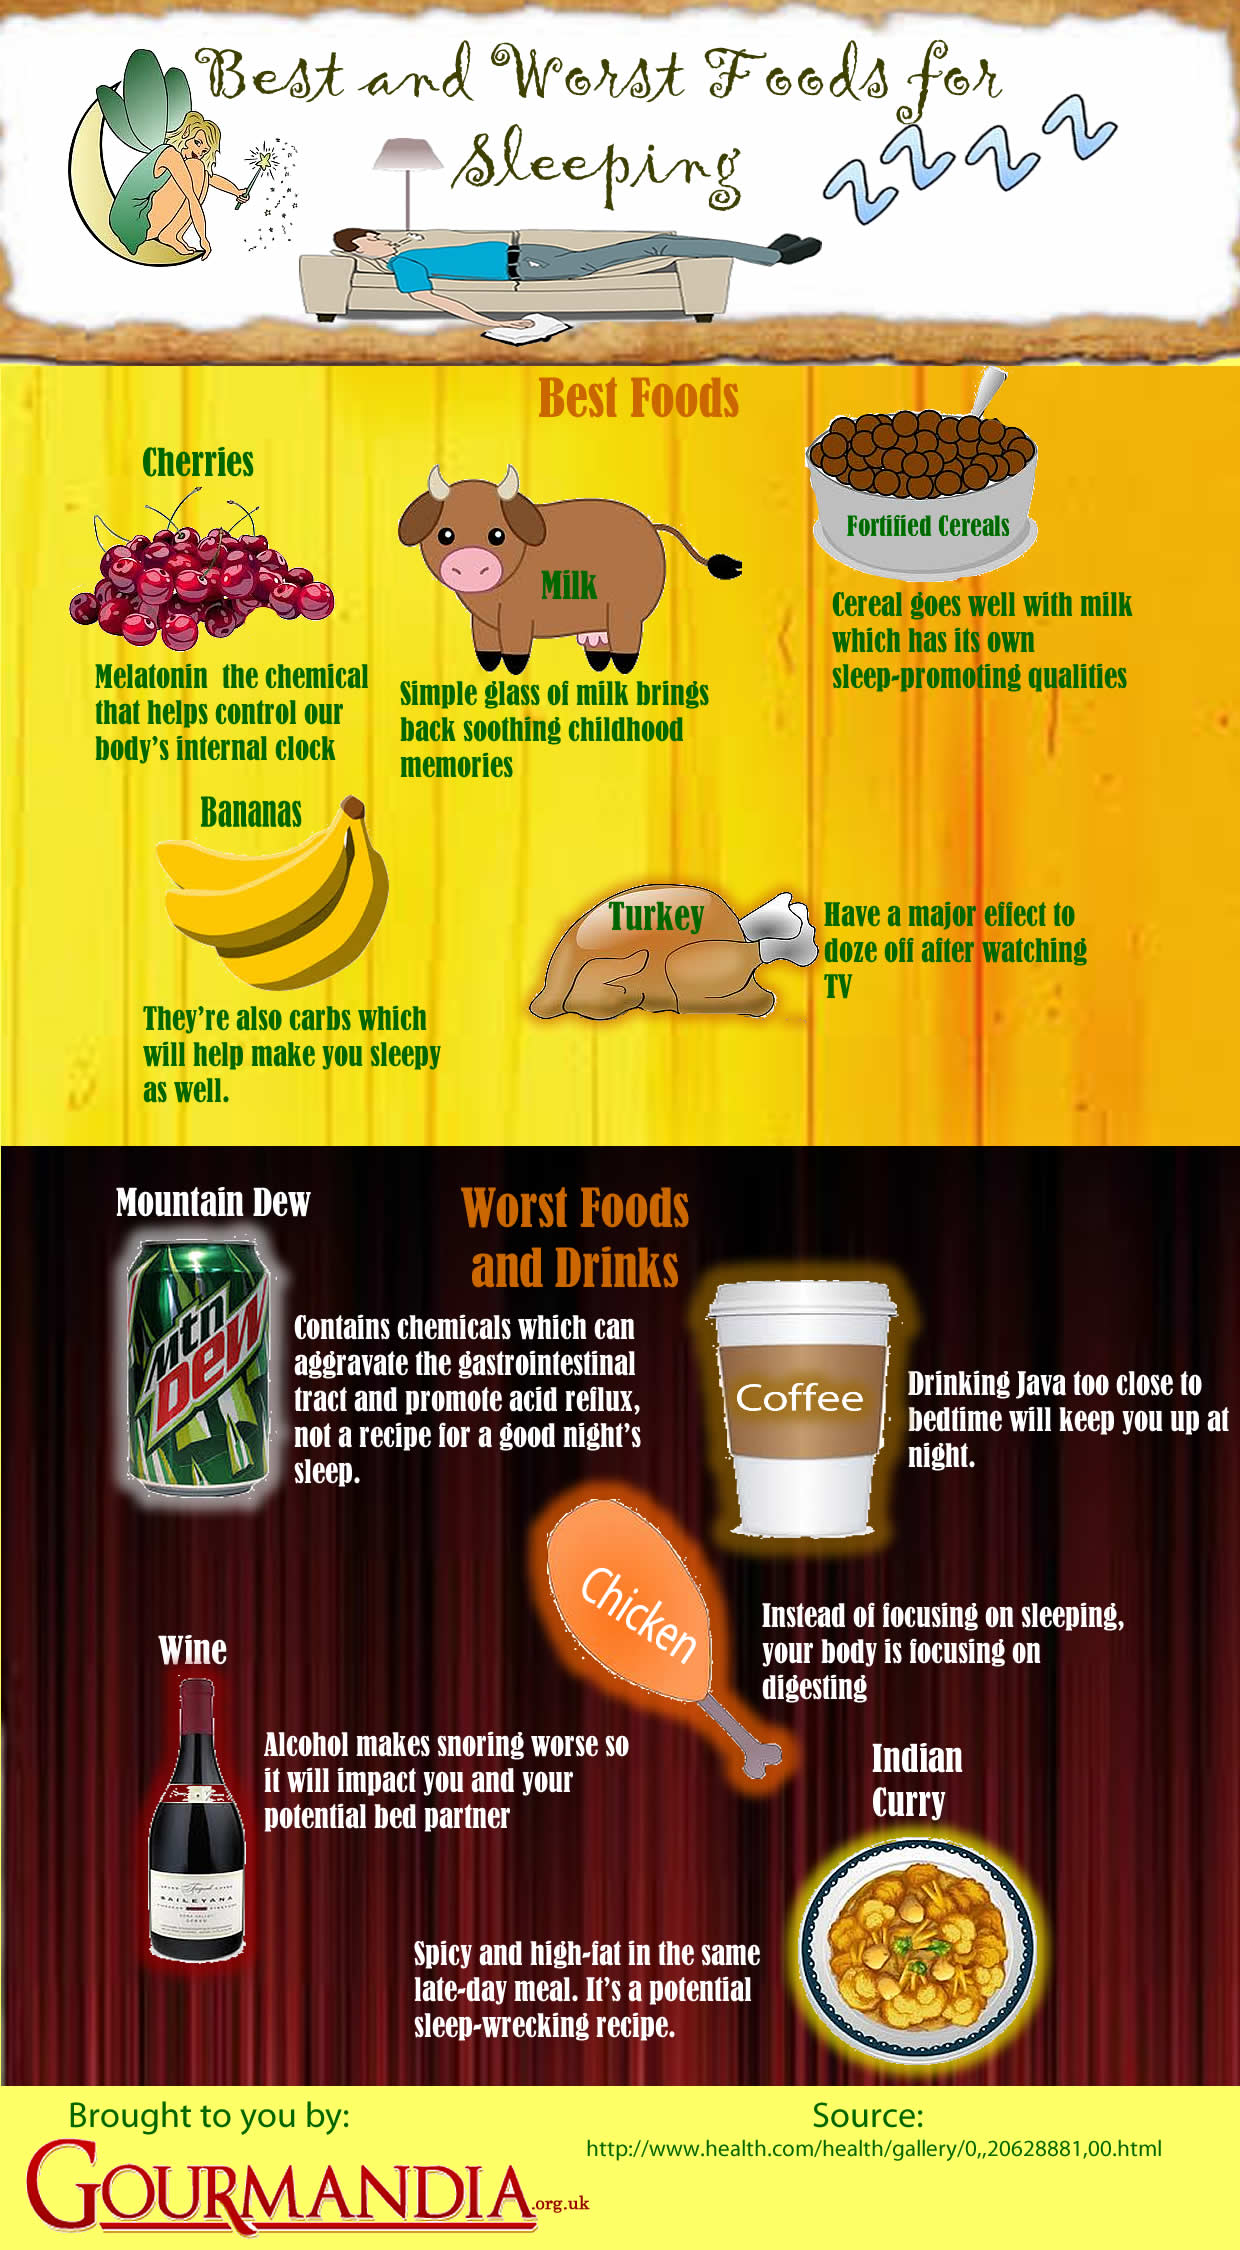 best-and-worst-foods-for-sleeping_520338a23c548